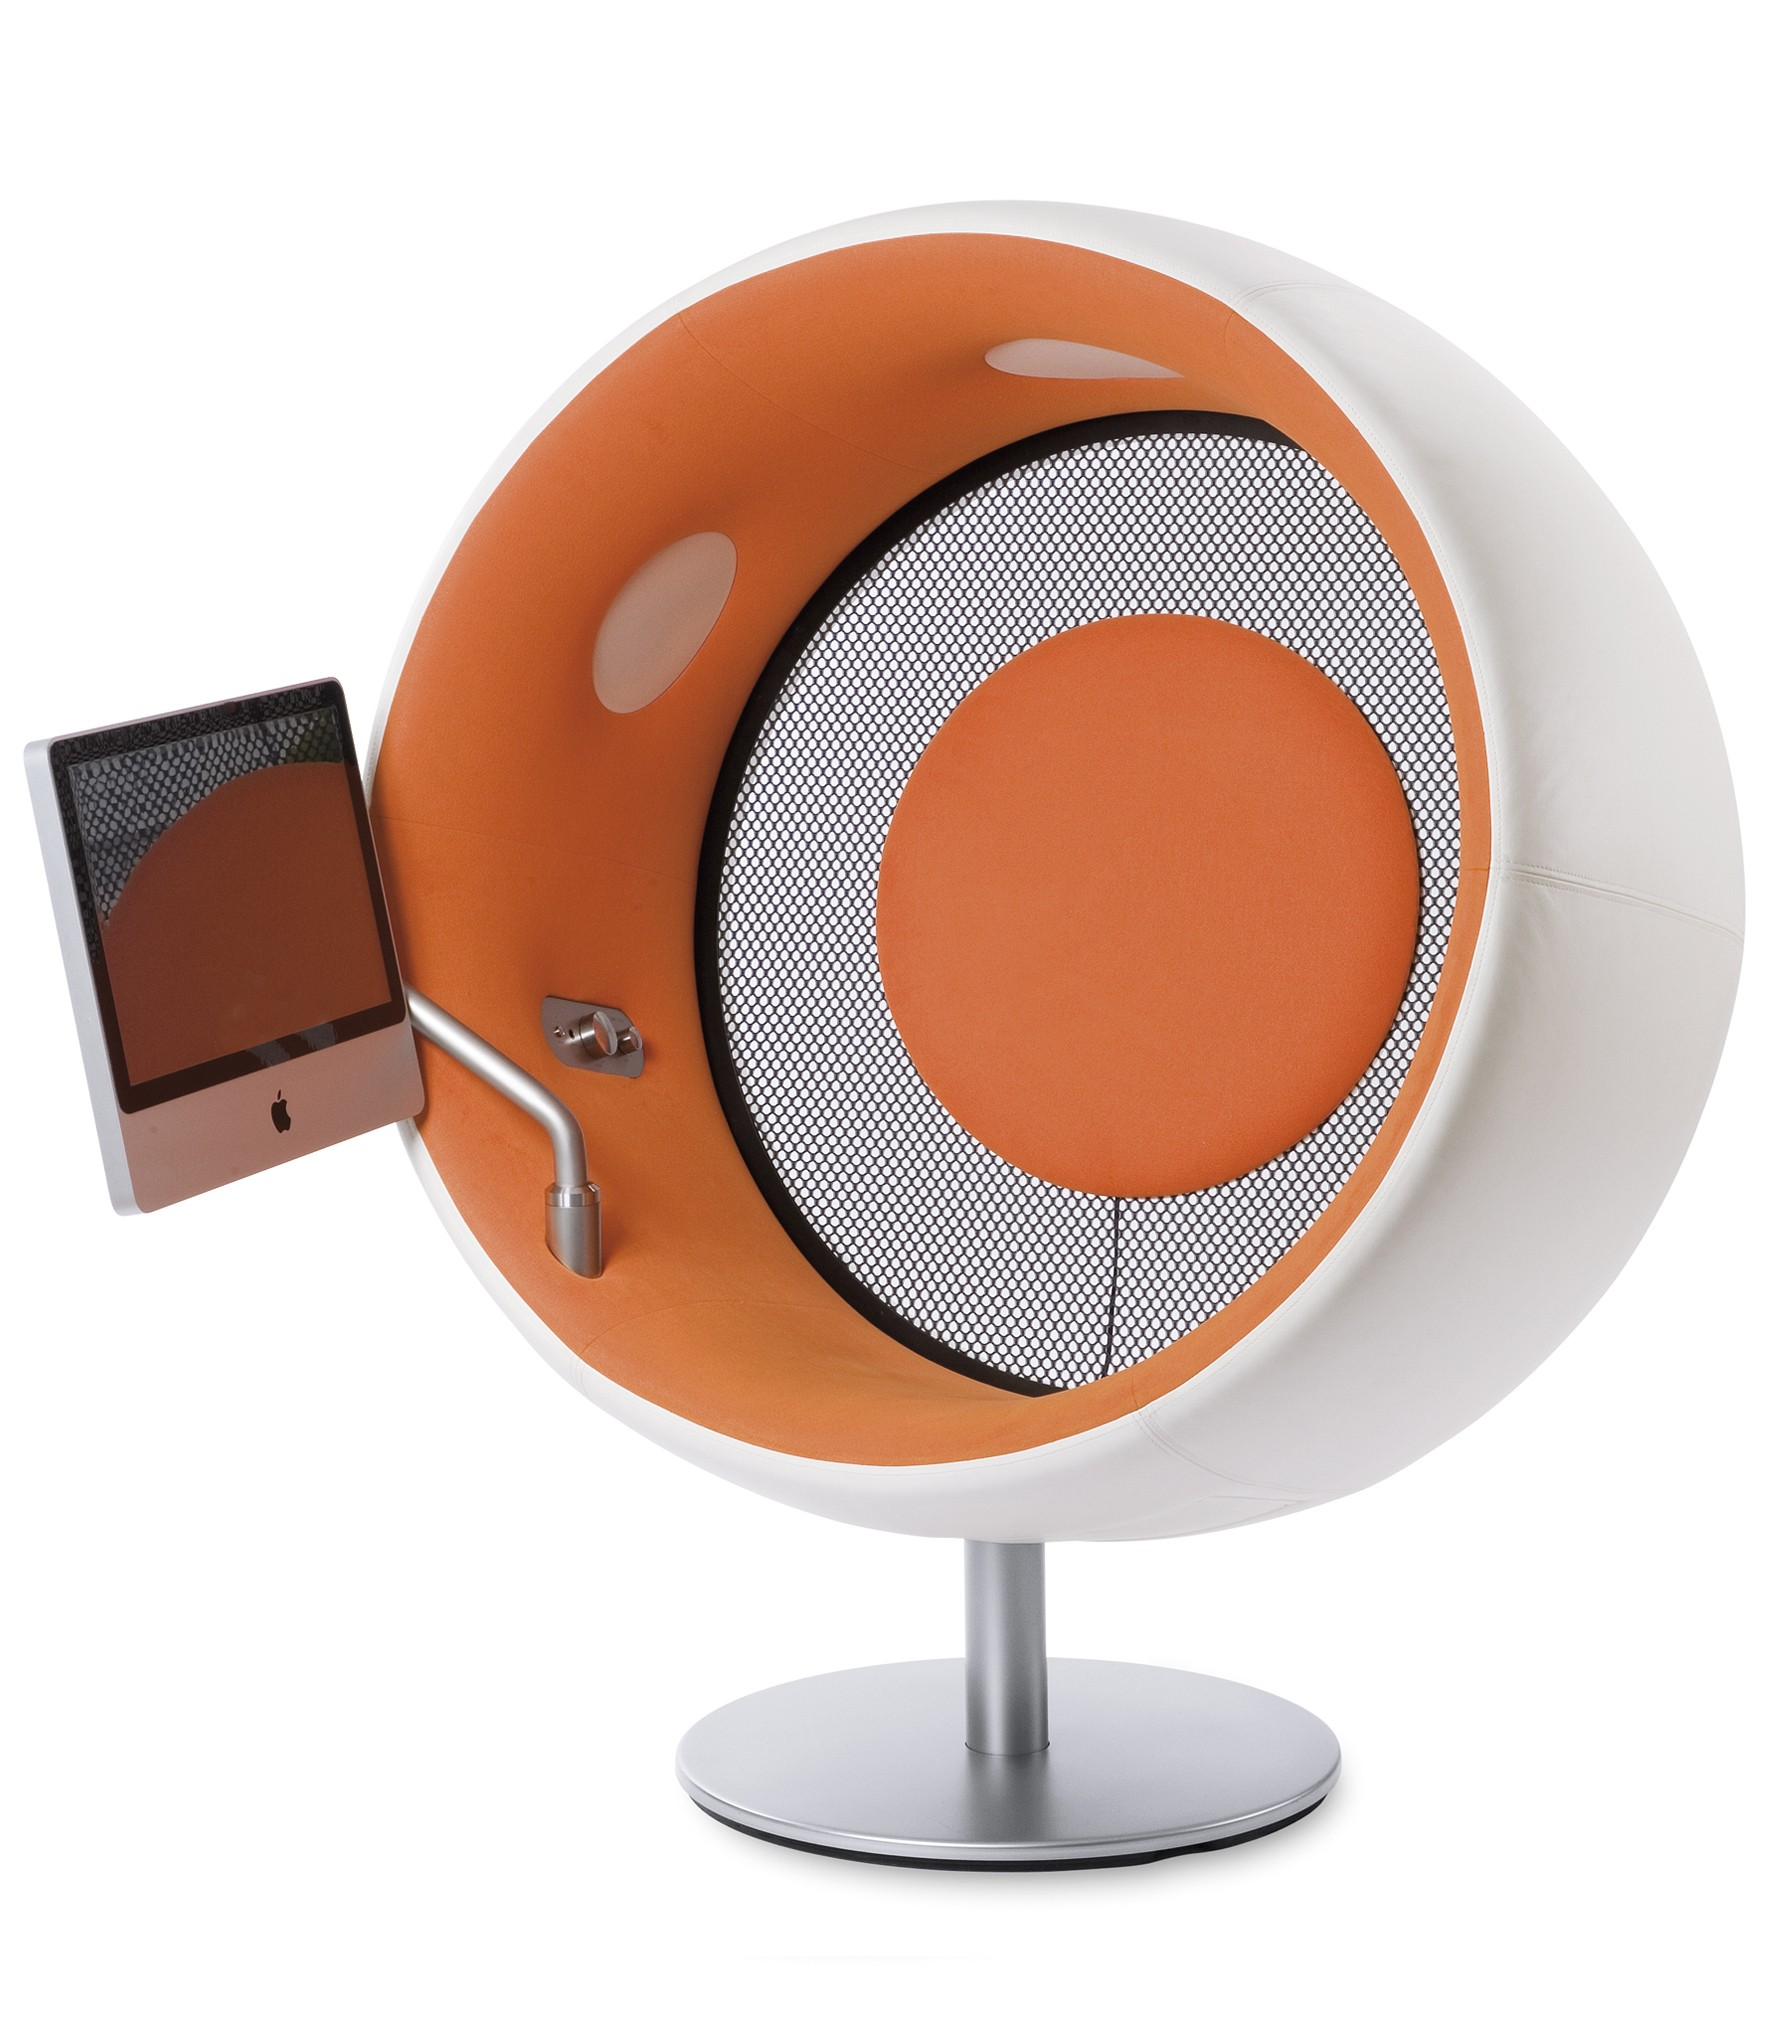 Superieur Chair With Speakers Built In   Ideas On Foter